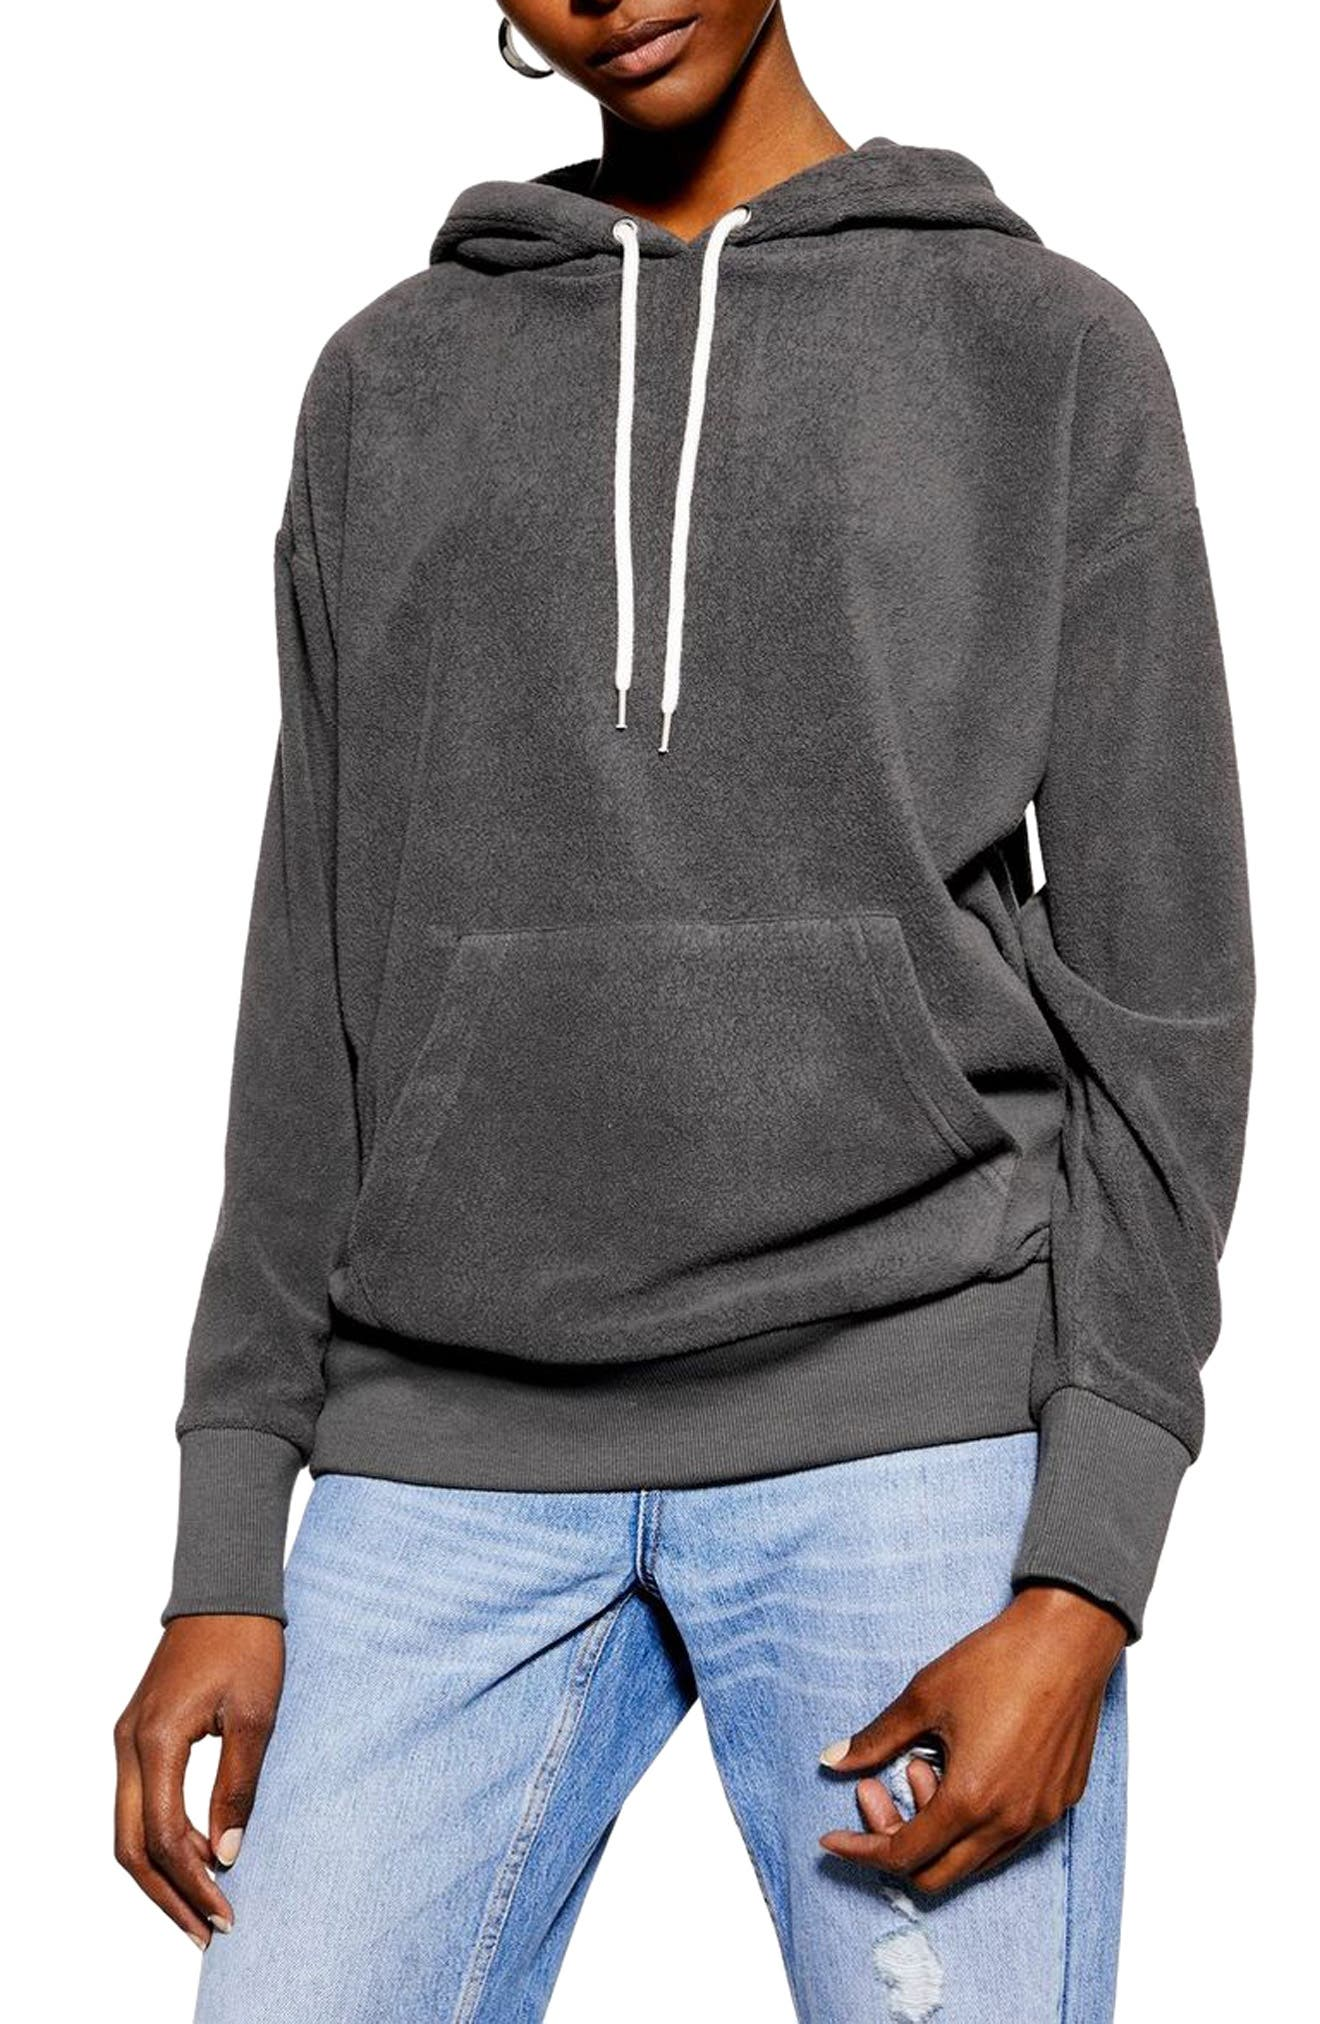 Bobbly Textured Hoodie,                             Main thumbnail 1, color,                             CHARCOAL